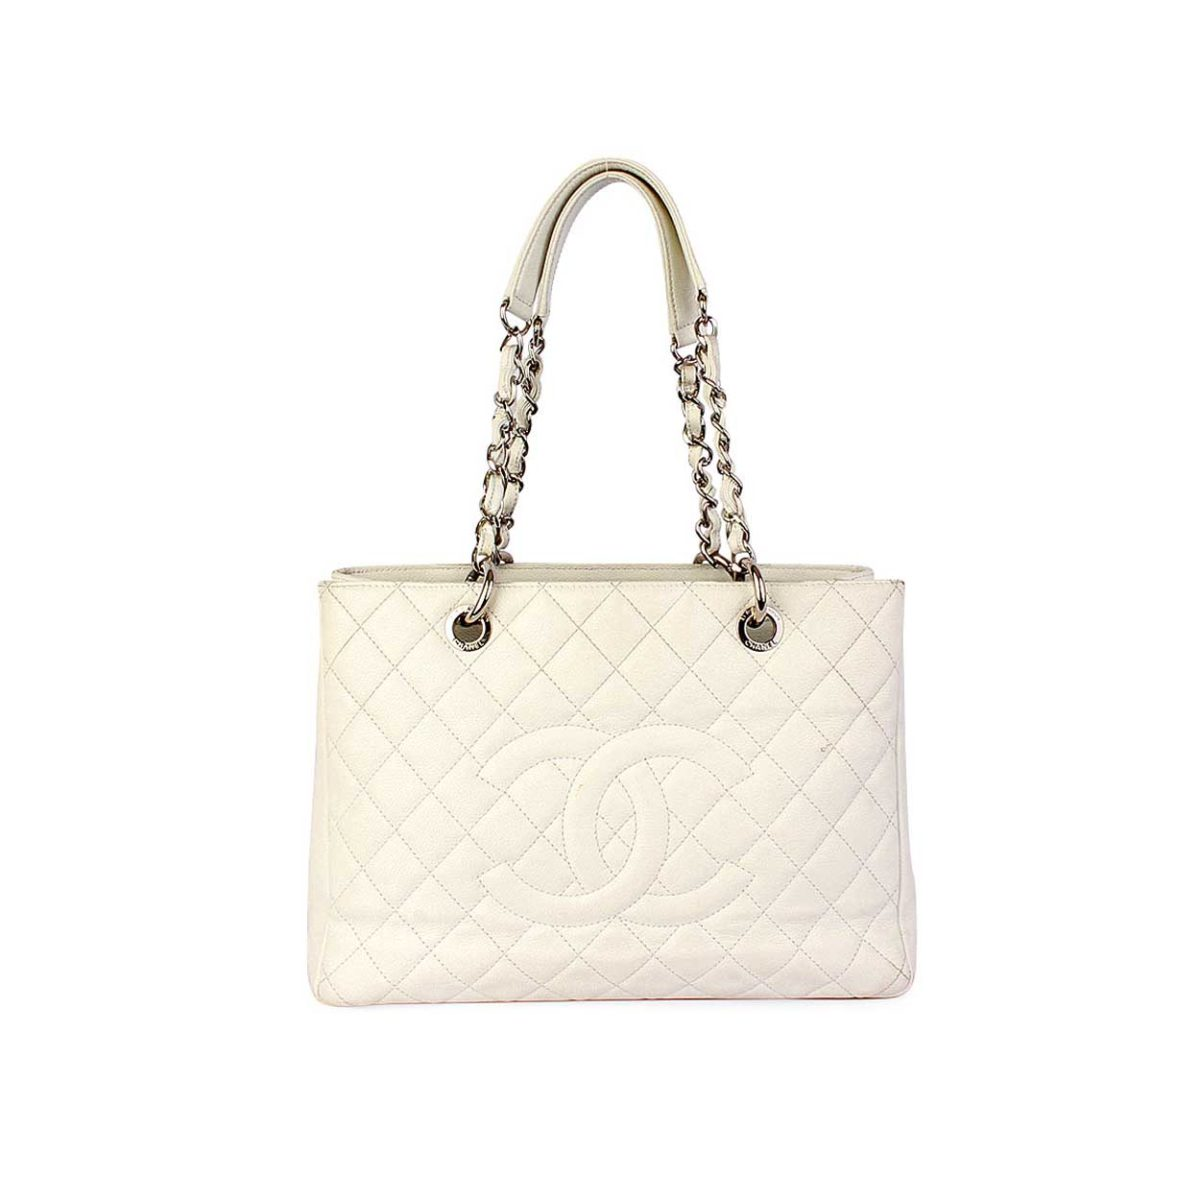 1a441a5b9ae8 CHANEL Quilted Leather Grand Shopping Tote White | Luxity